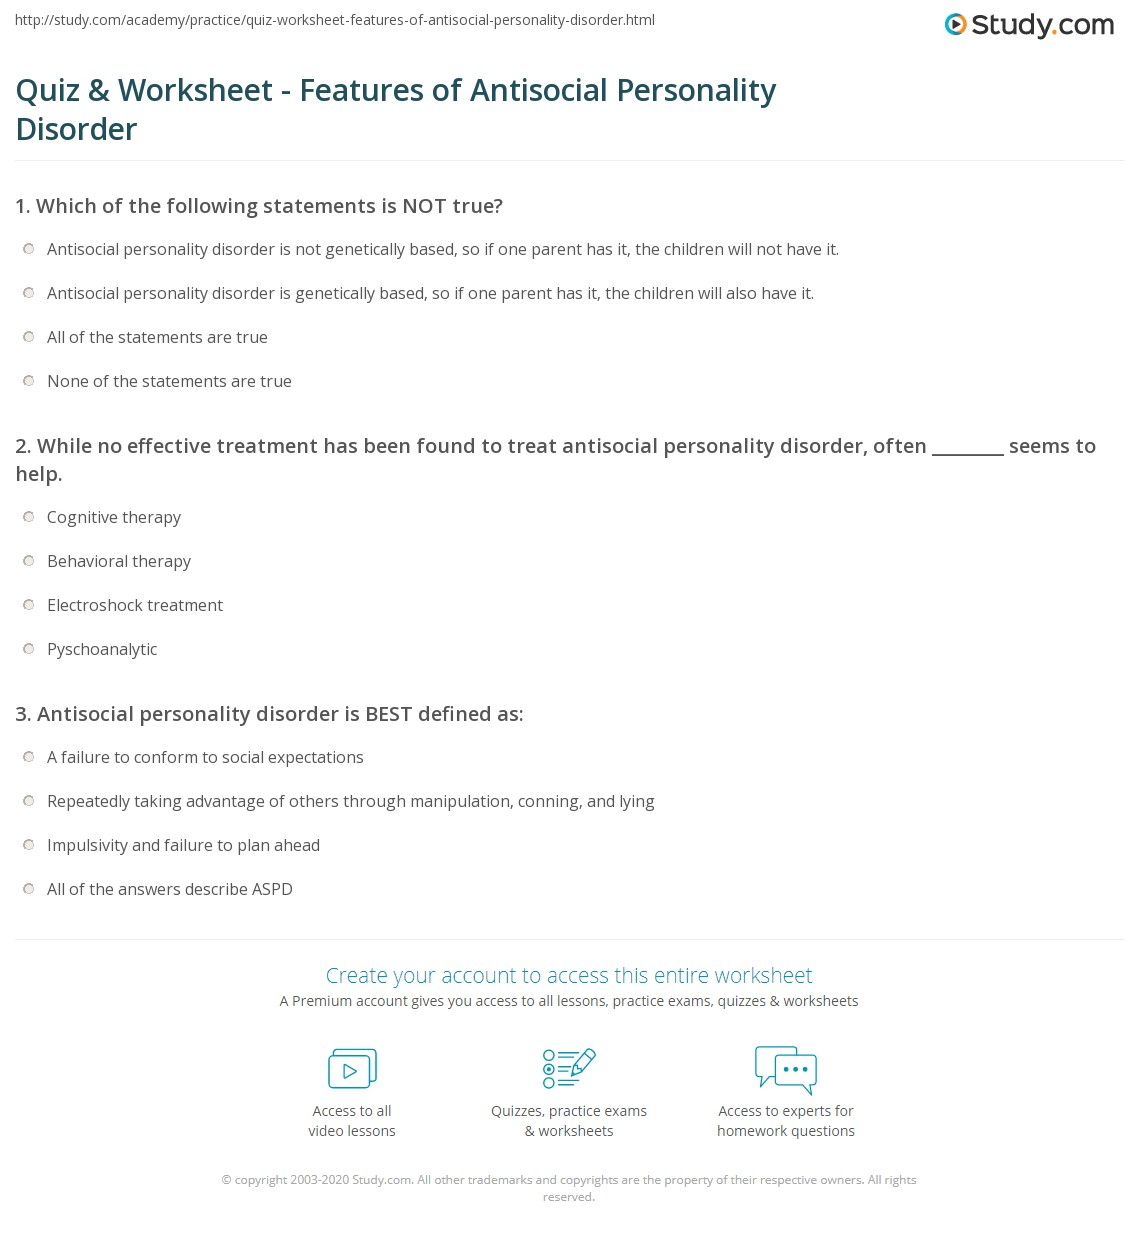 Quiz & Worksheet Features of Antisocial Personality Disorder